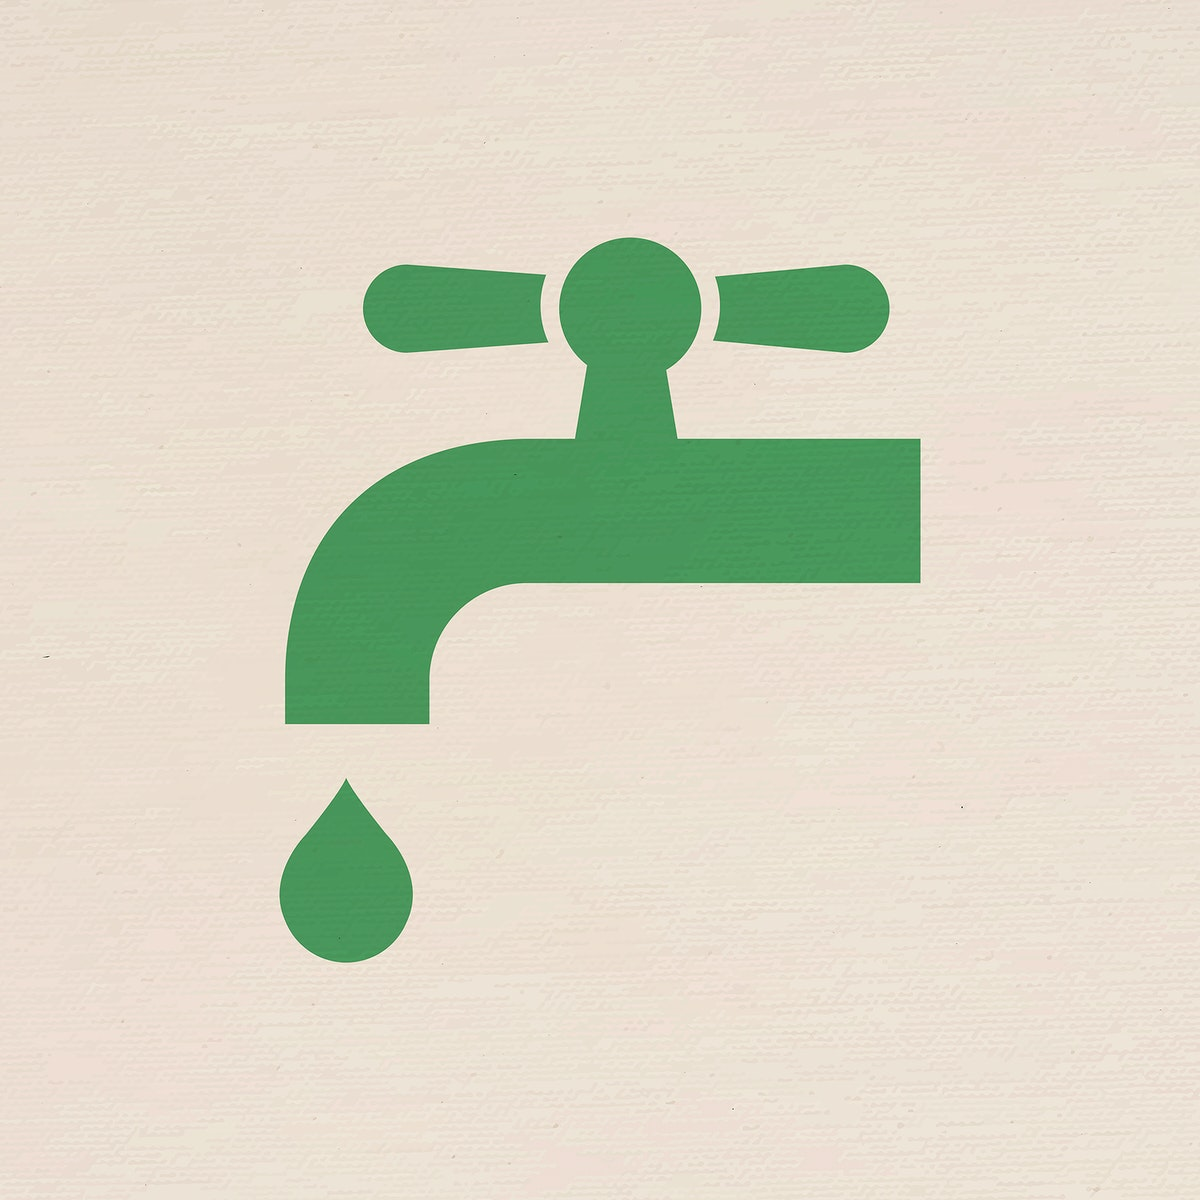 Water faucet icon psd for business in flat graphic